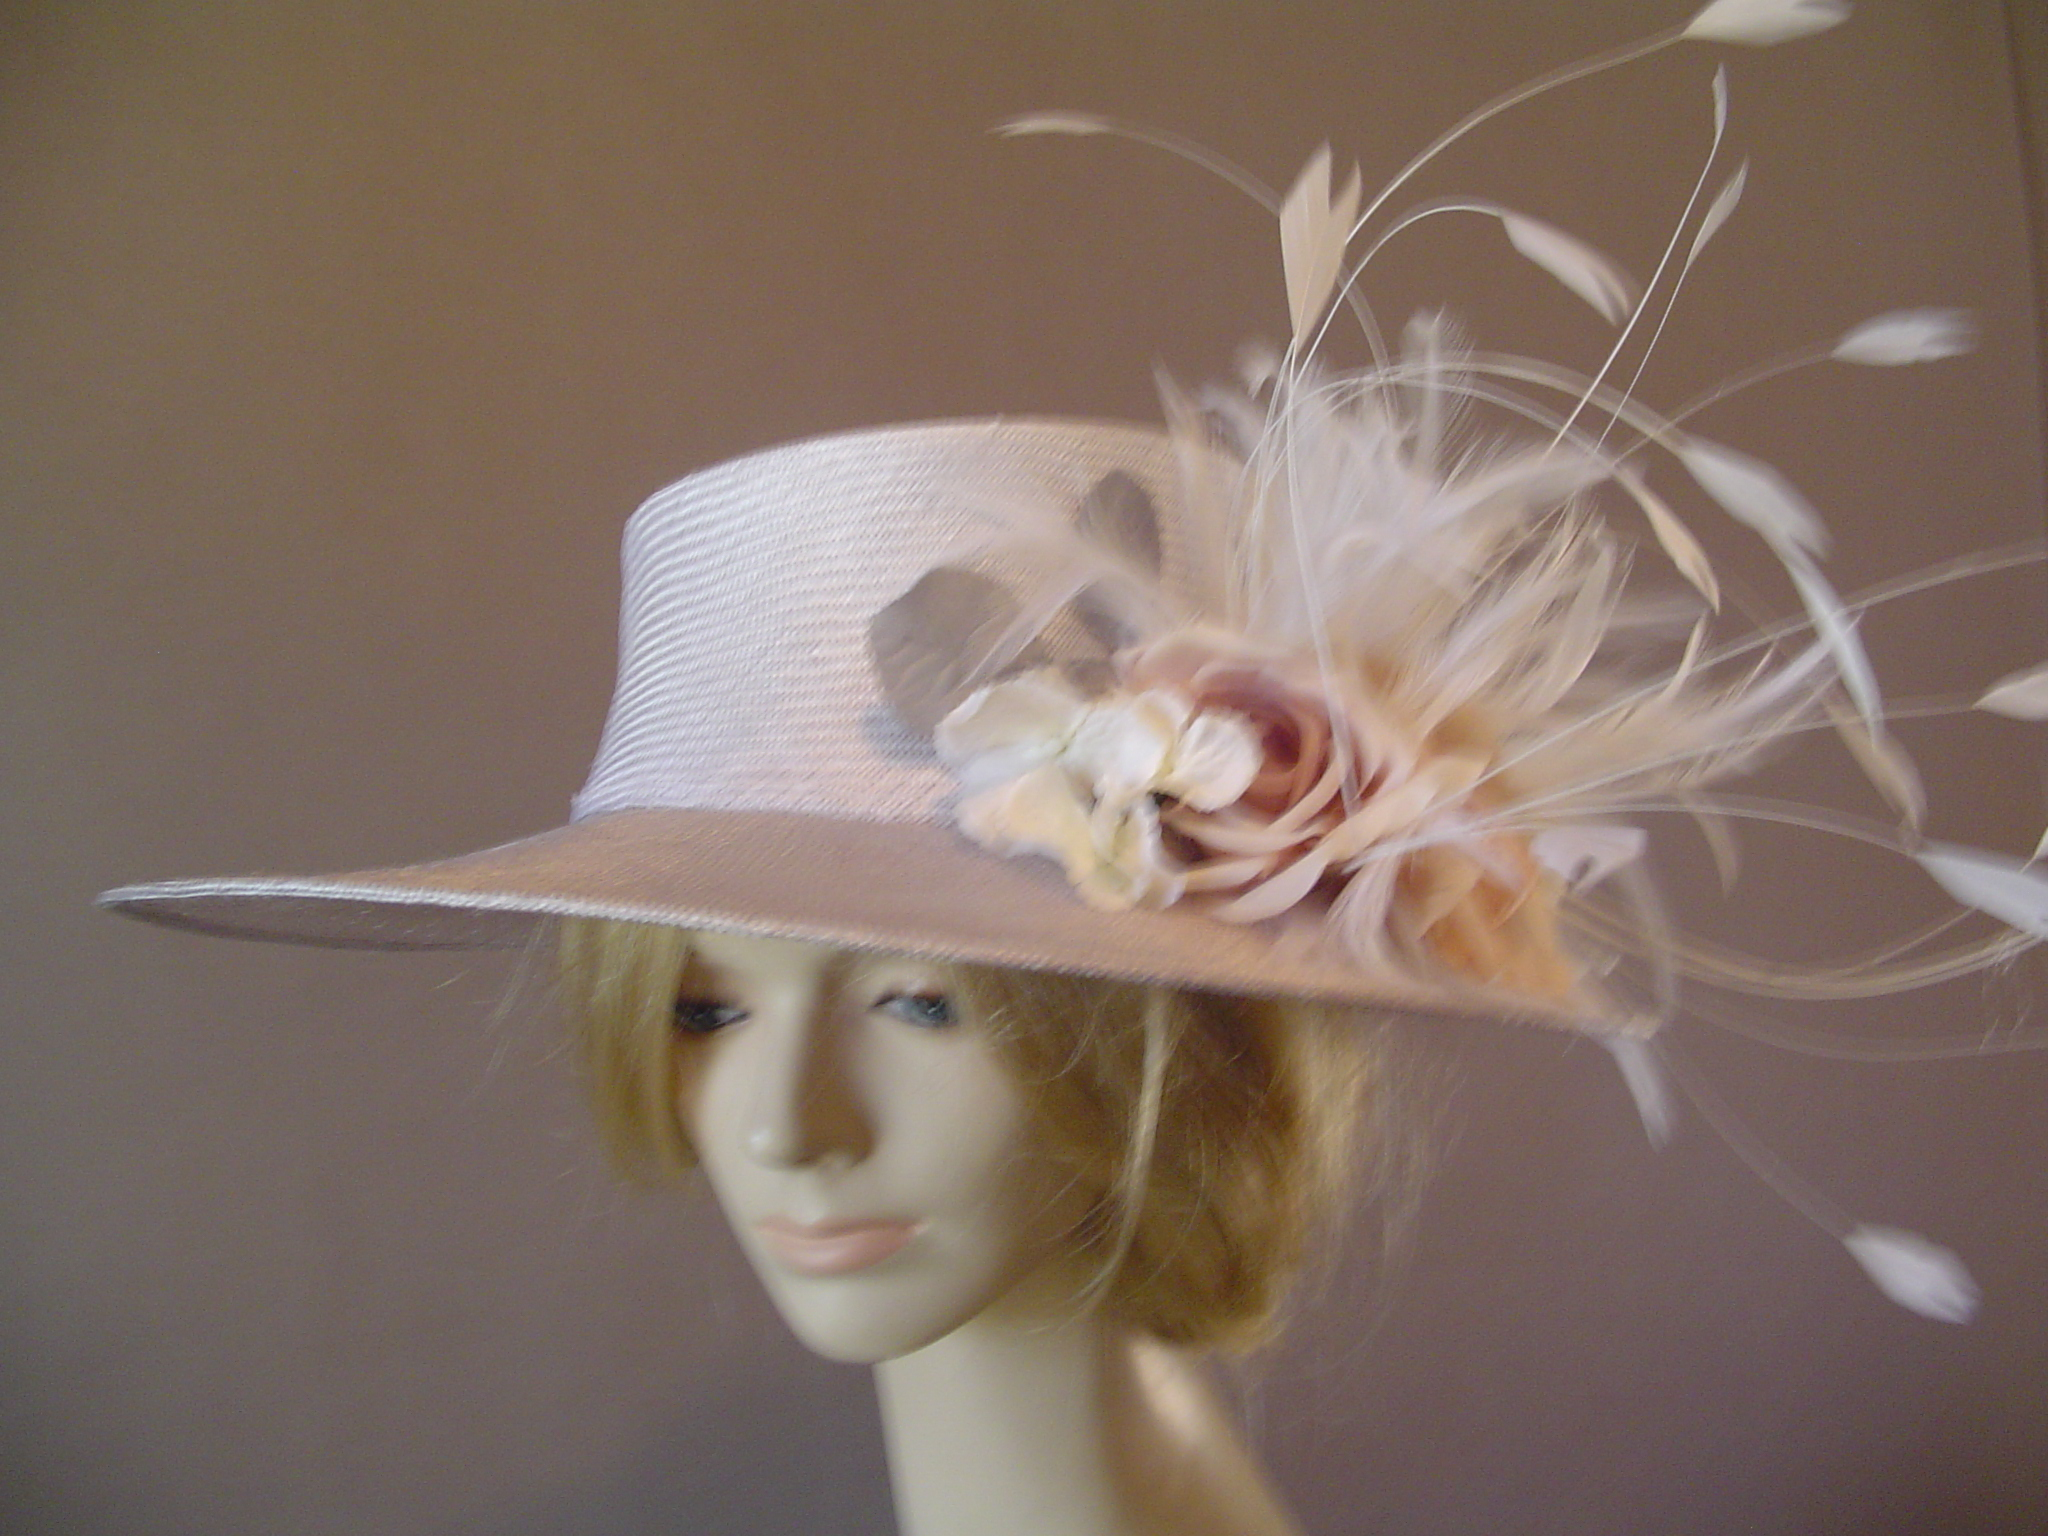 ee244029b9c Custom Royal hat for Chanel suit for Derby 2012